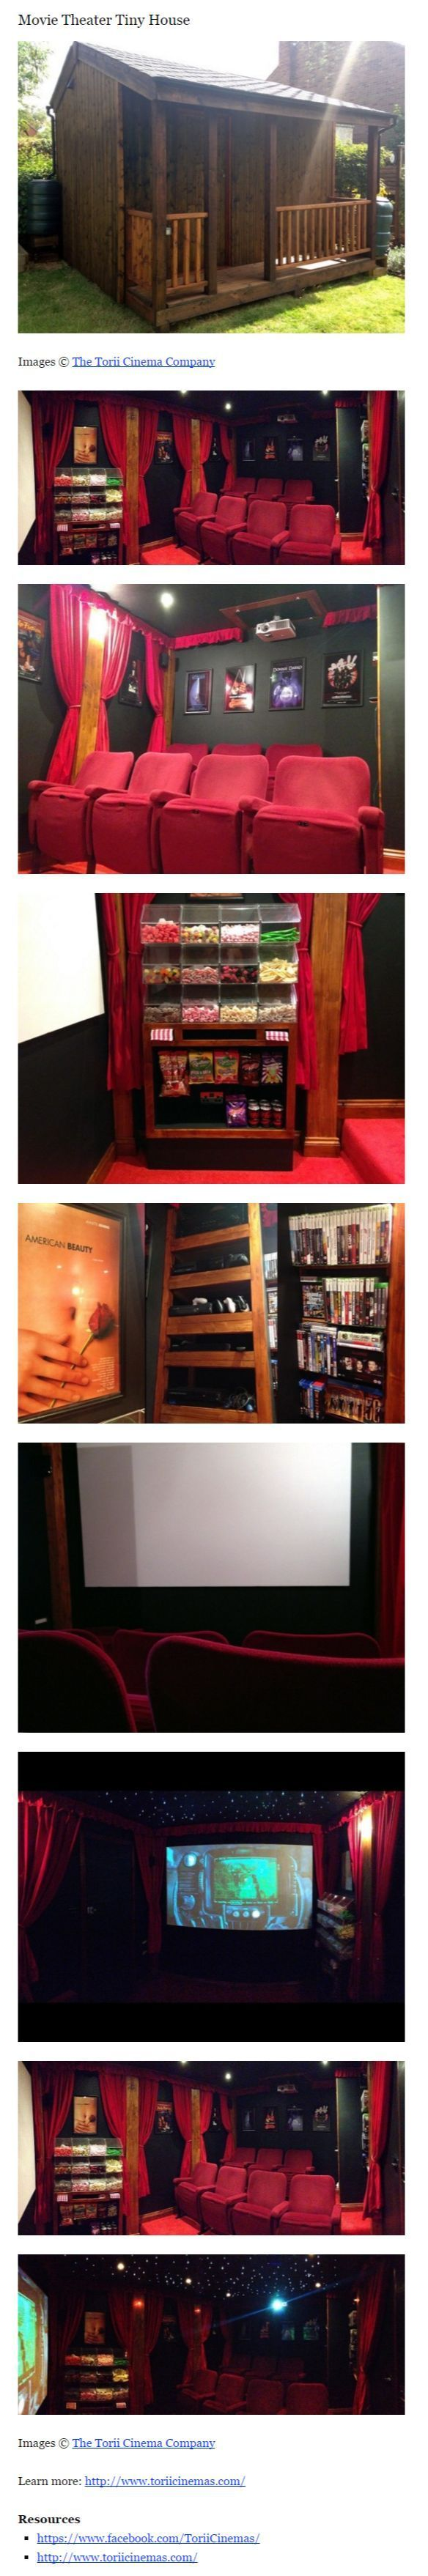 Movie Theater Tiny House #ThisIsAwesome #Iwantone #UBHOMETEAM